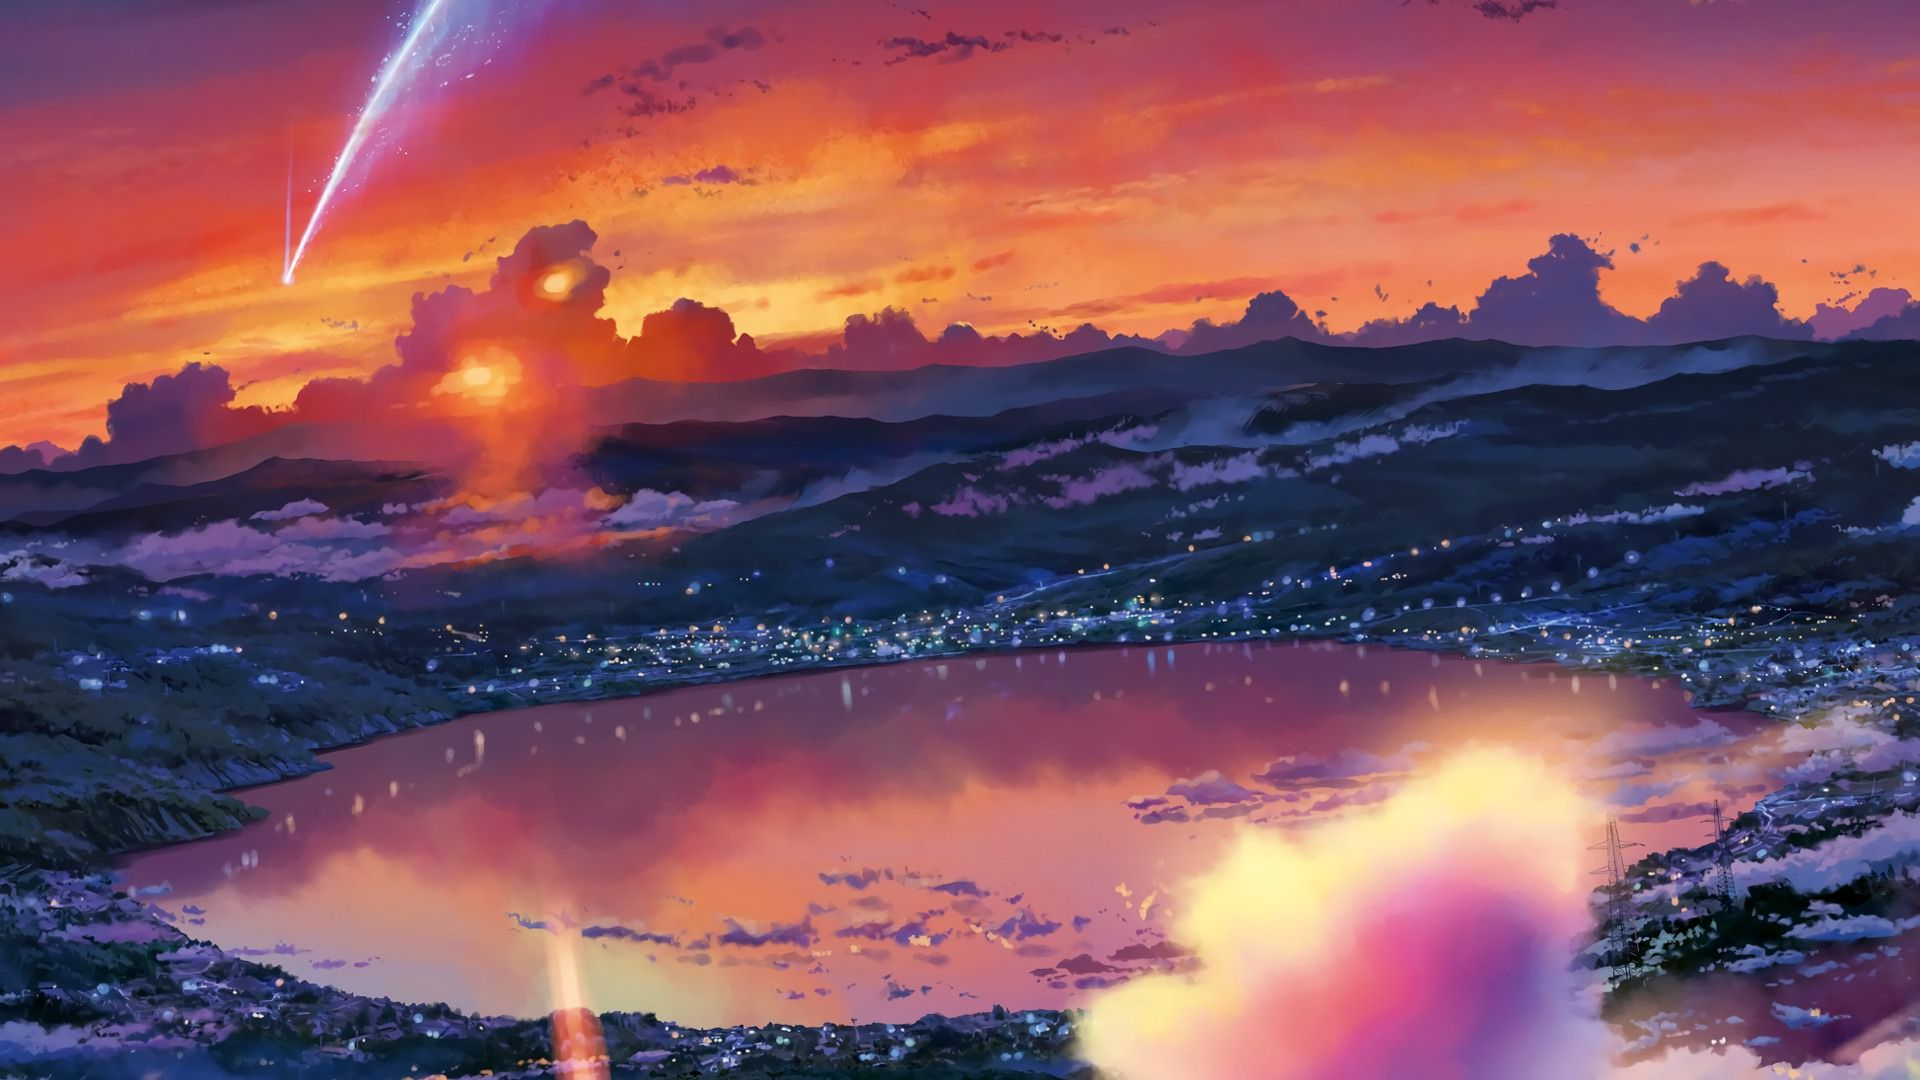 Scenery From Your Name [1920x1080] Kimi no na wa